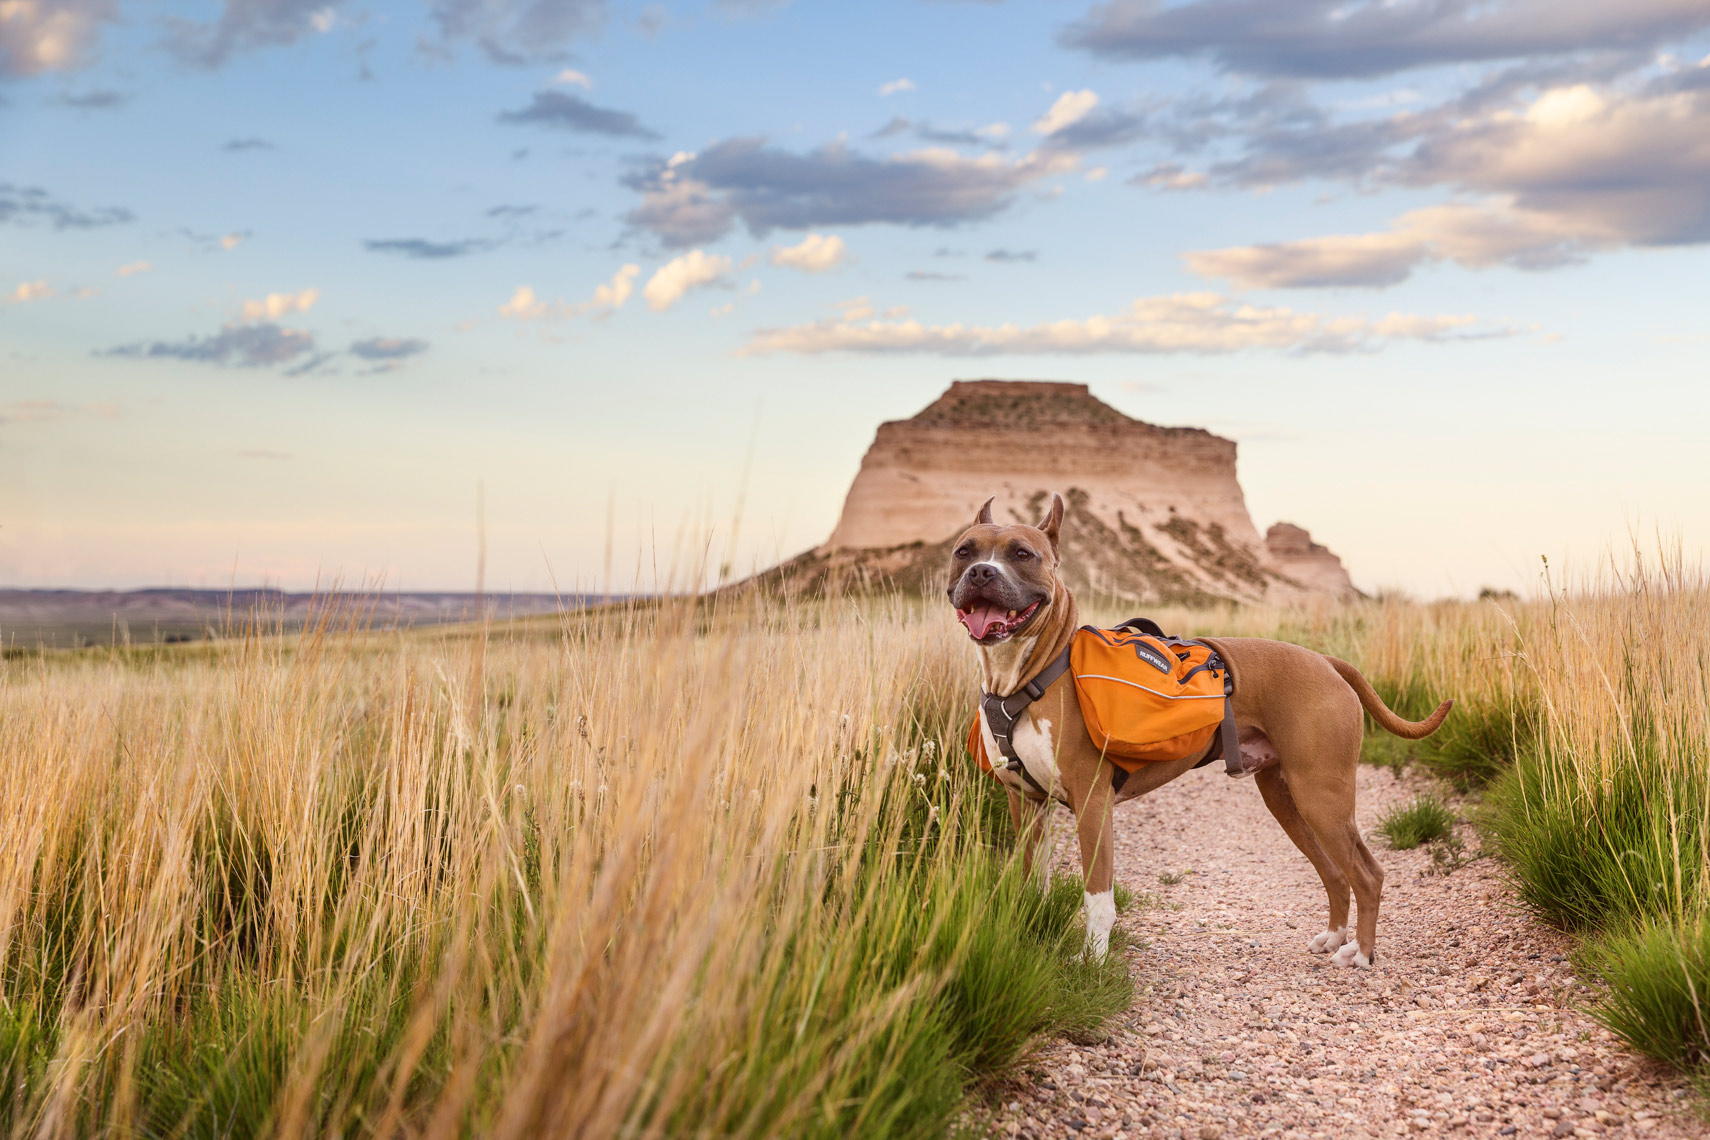 Dog in Pawnee Grasslands, Colorado